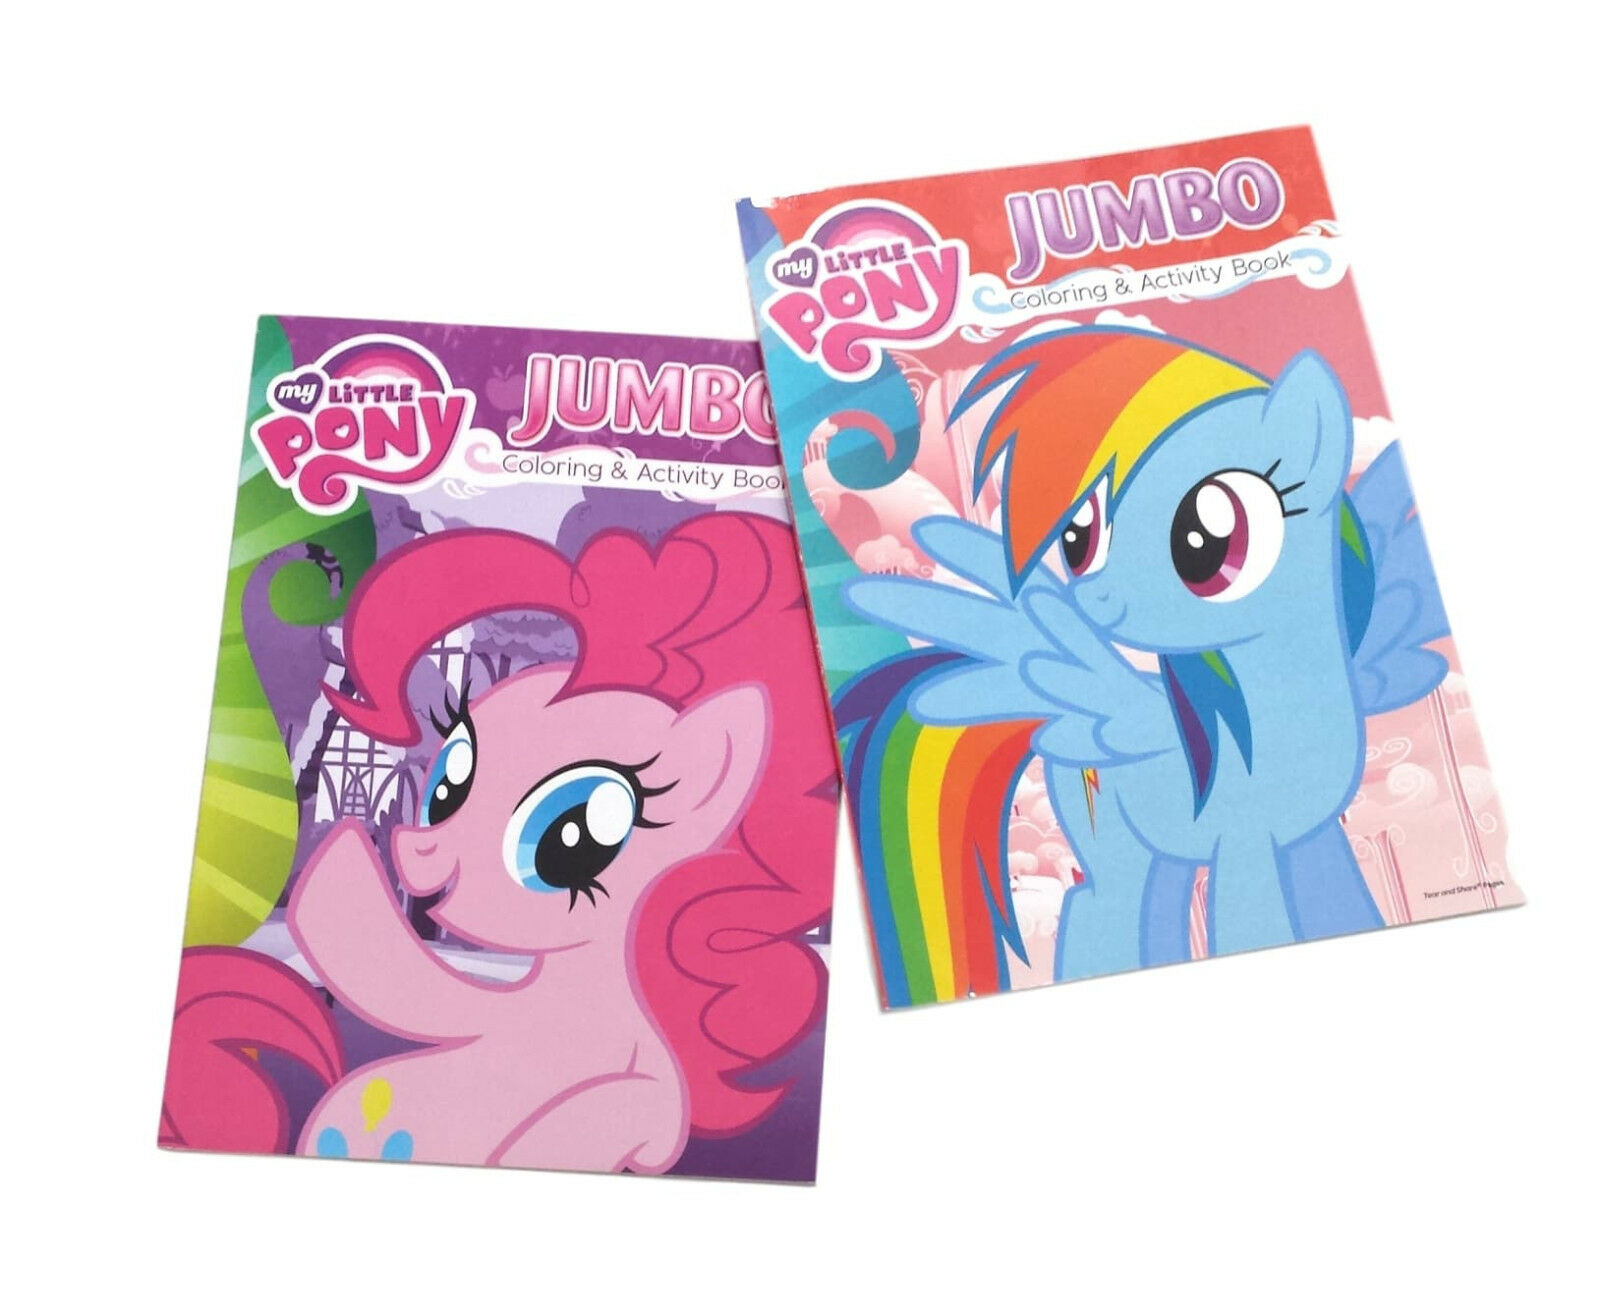 - My Little Pony Coloring Book Kids Activity Books Pinky Pie Rainbow